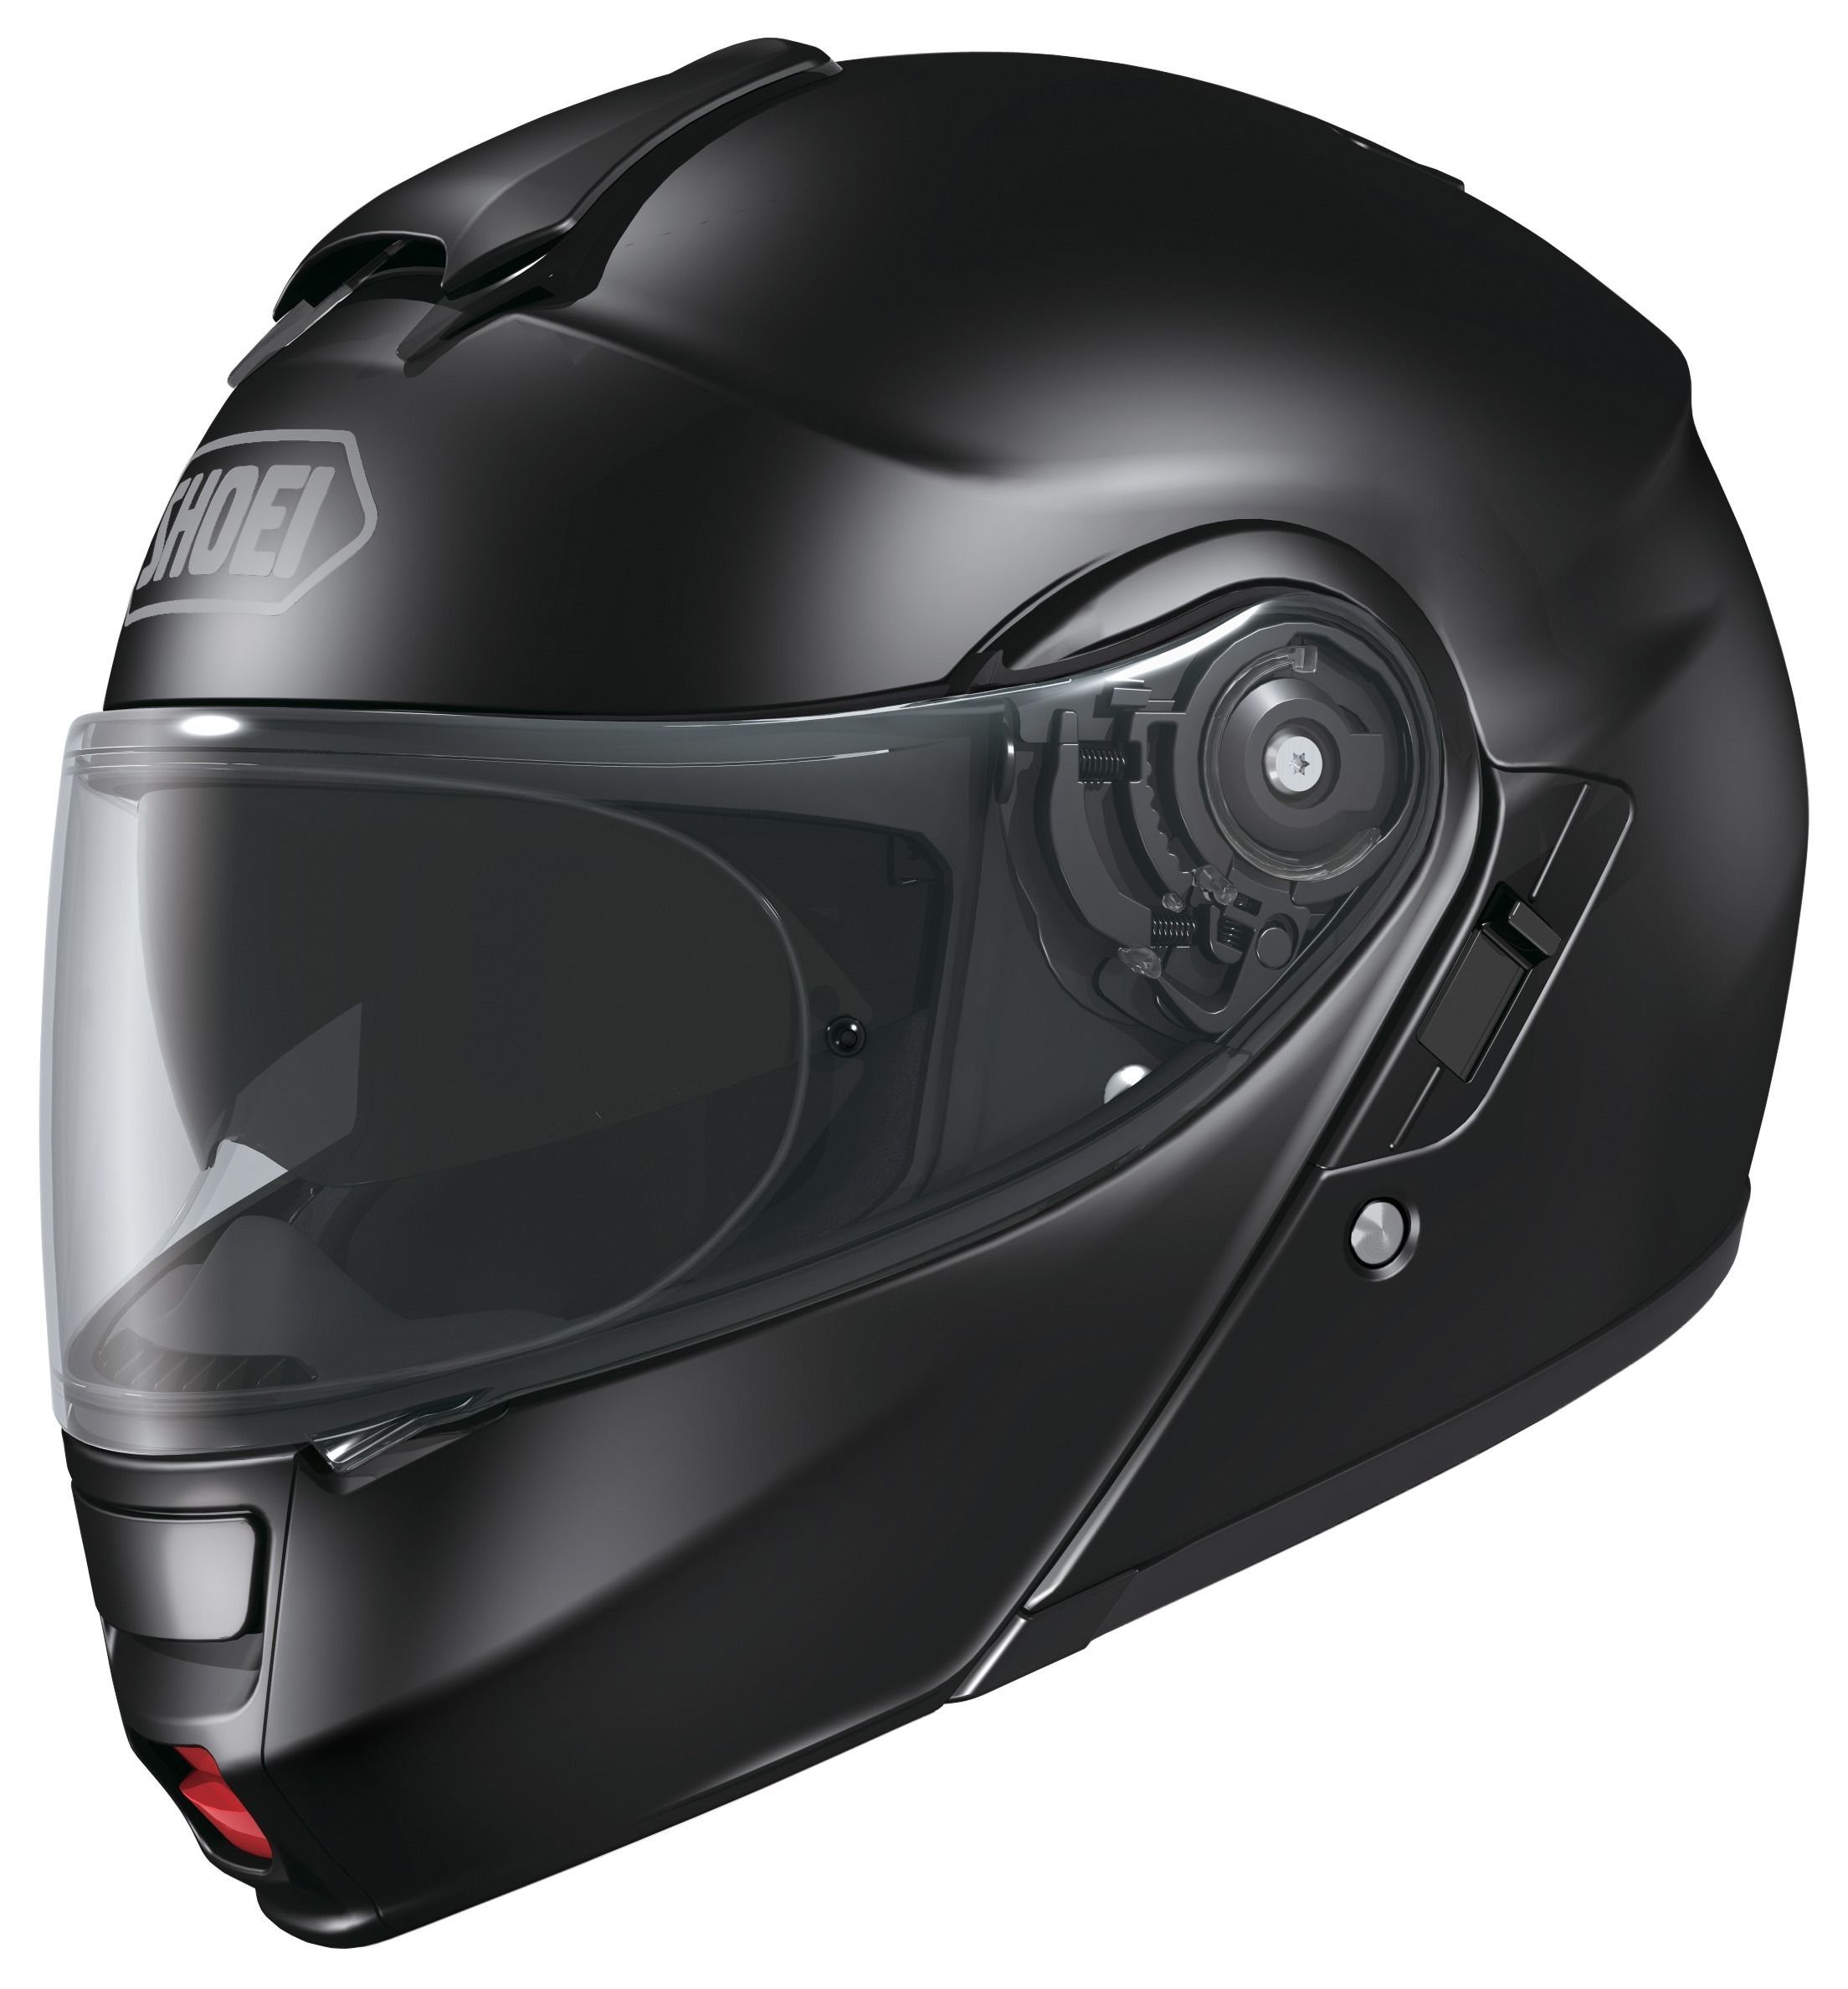 helmet shoei motorcycle neotec helmets modular casque neotech multitec modulable face